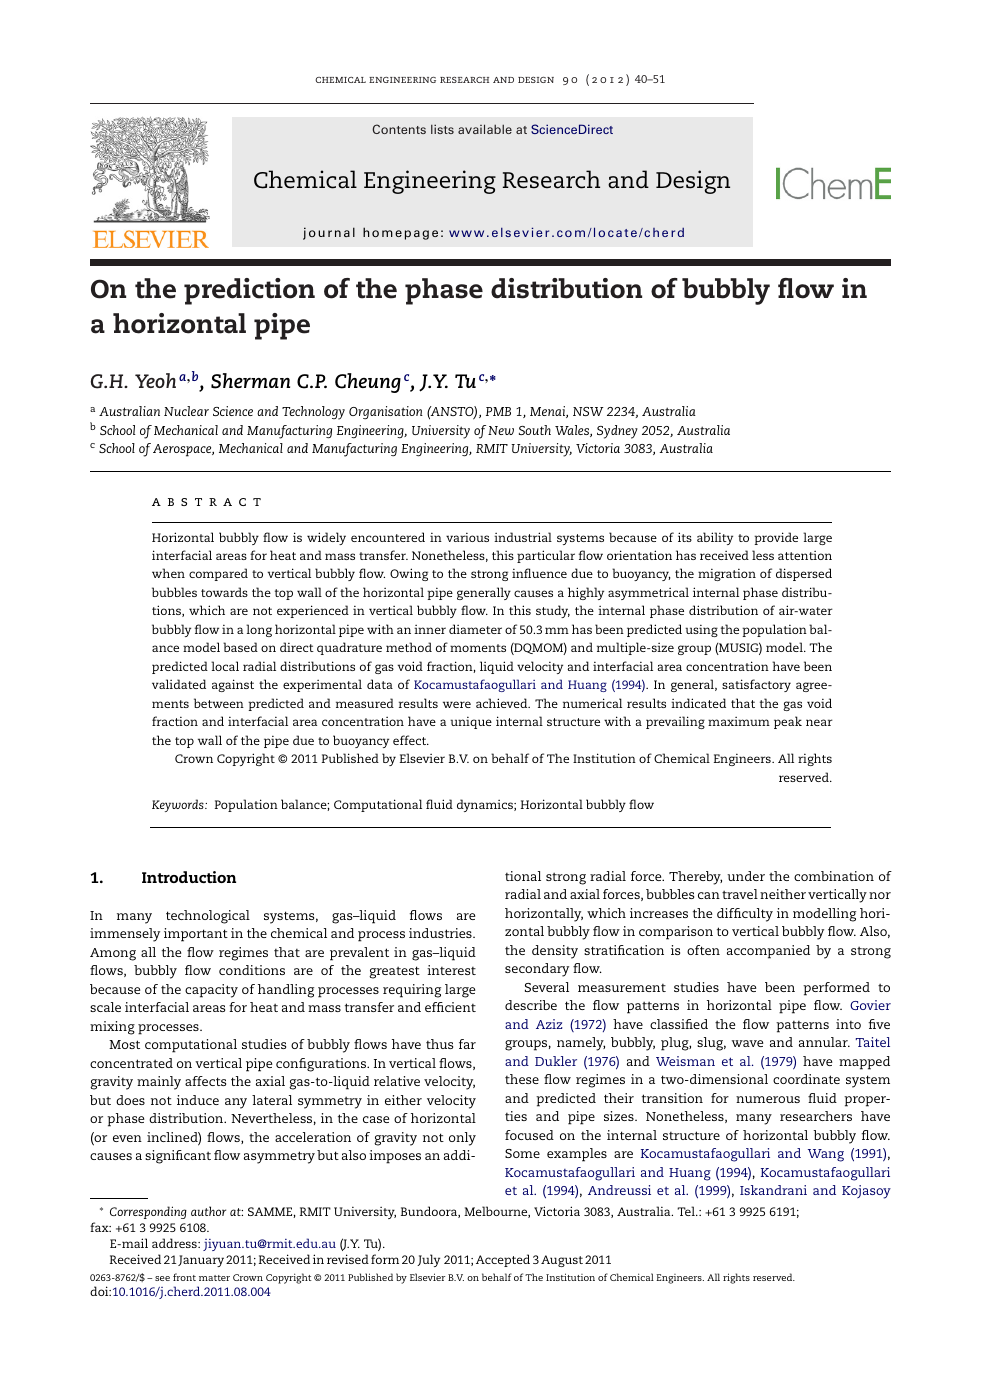 On The Prediction Of The Phase Distribution Of Bubbly Flow In A Horizontal Pipe Topic Of Research Paper In Chemical Engineering Download Scholarly Article Pdf And Read For Free On Cyberleninka